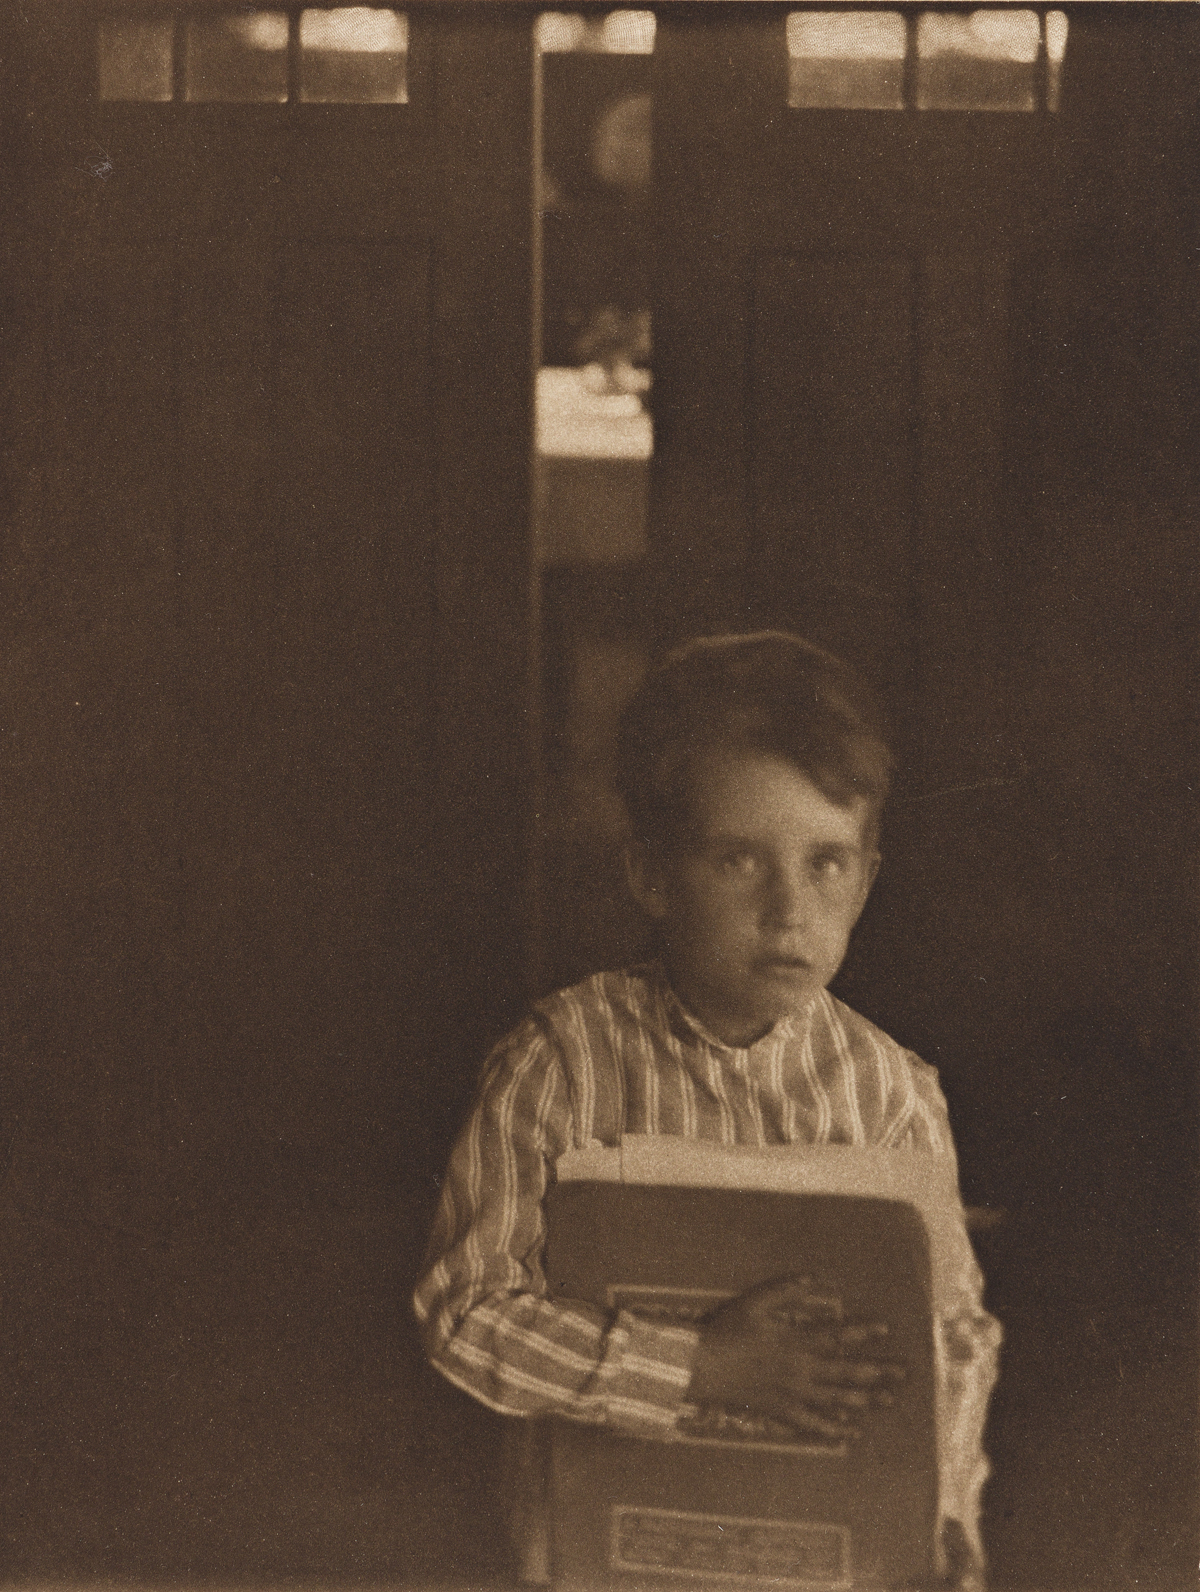 CLARENCE WHITE (1871-1925) Boy with Camera Work, from Camera Work Number 9.